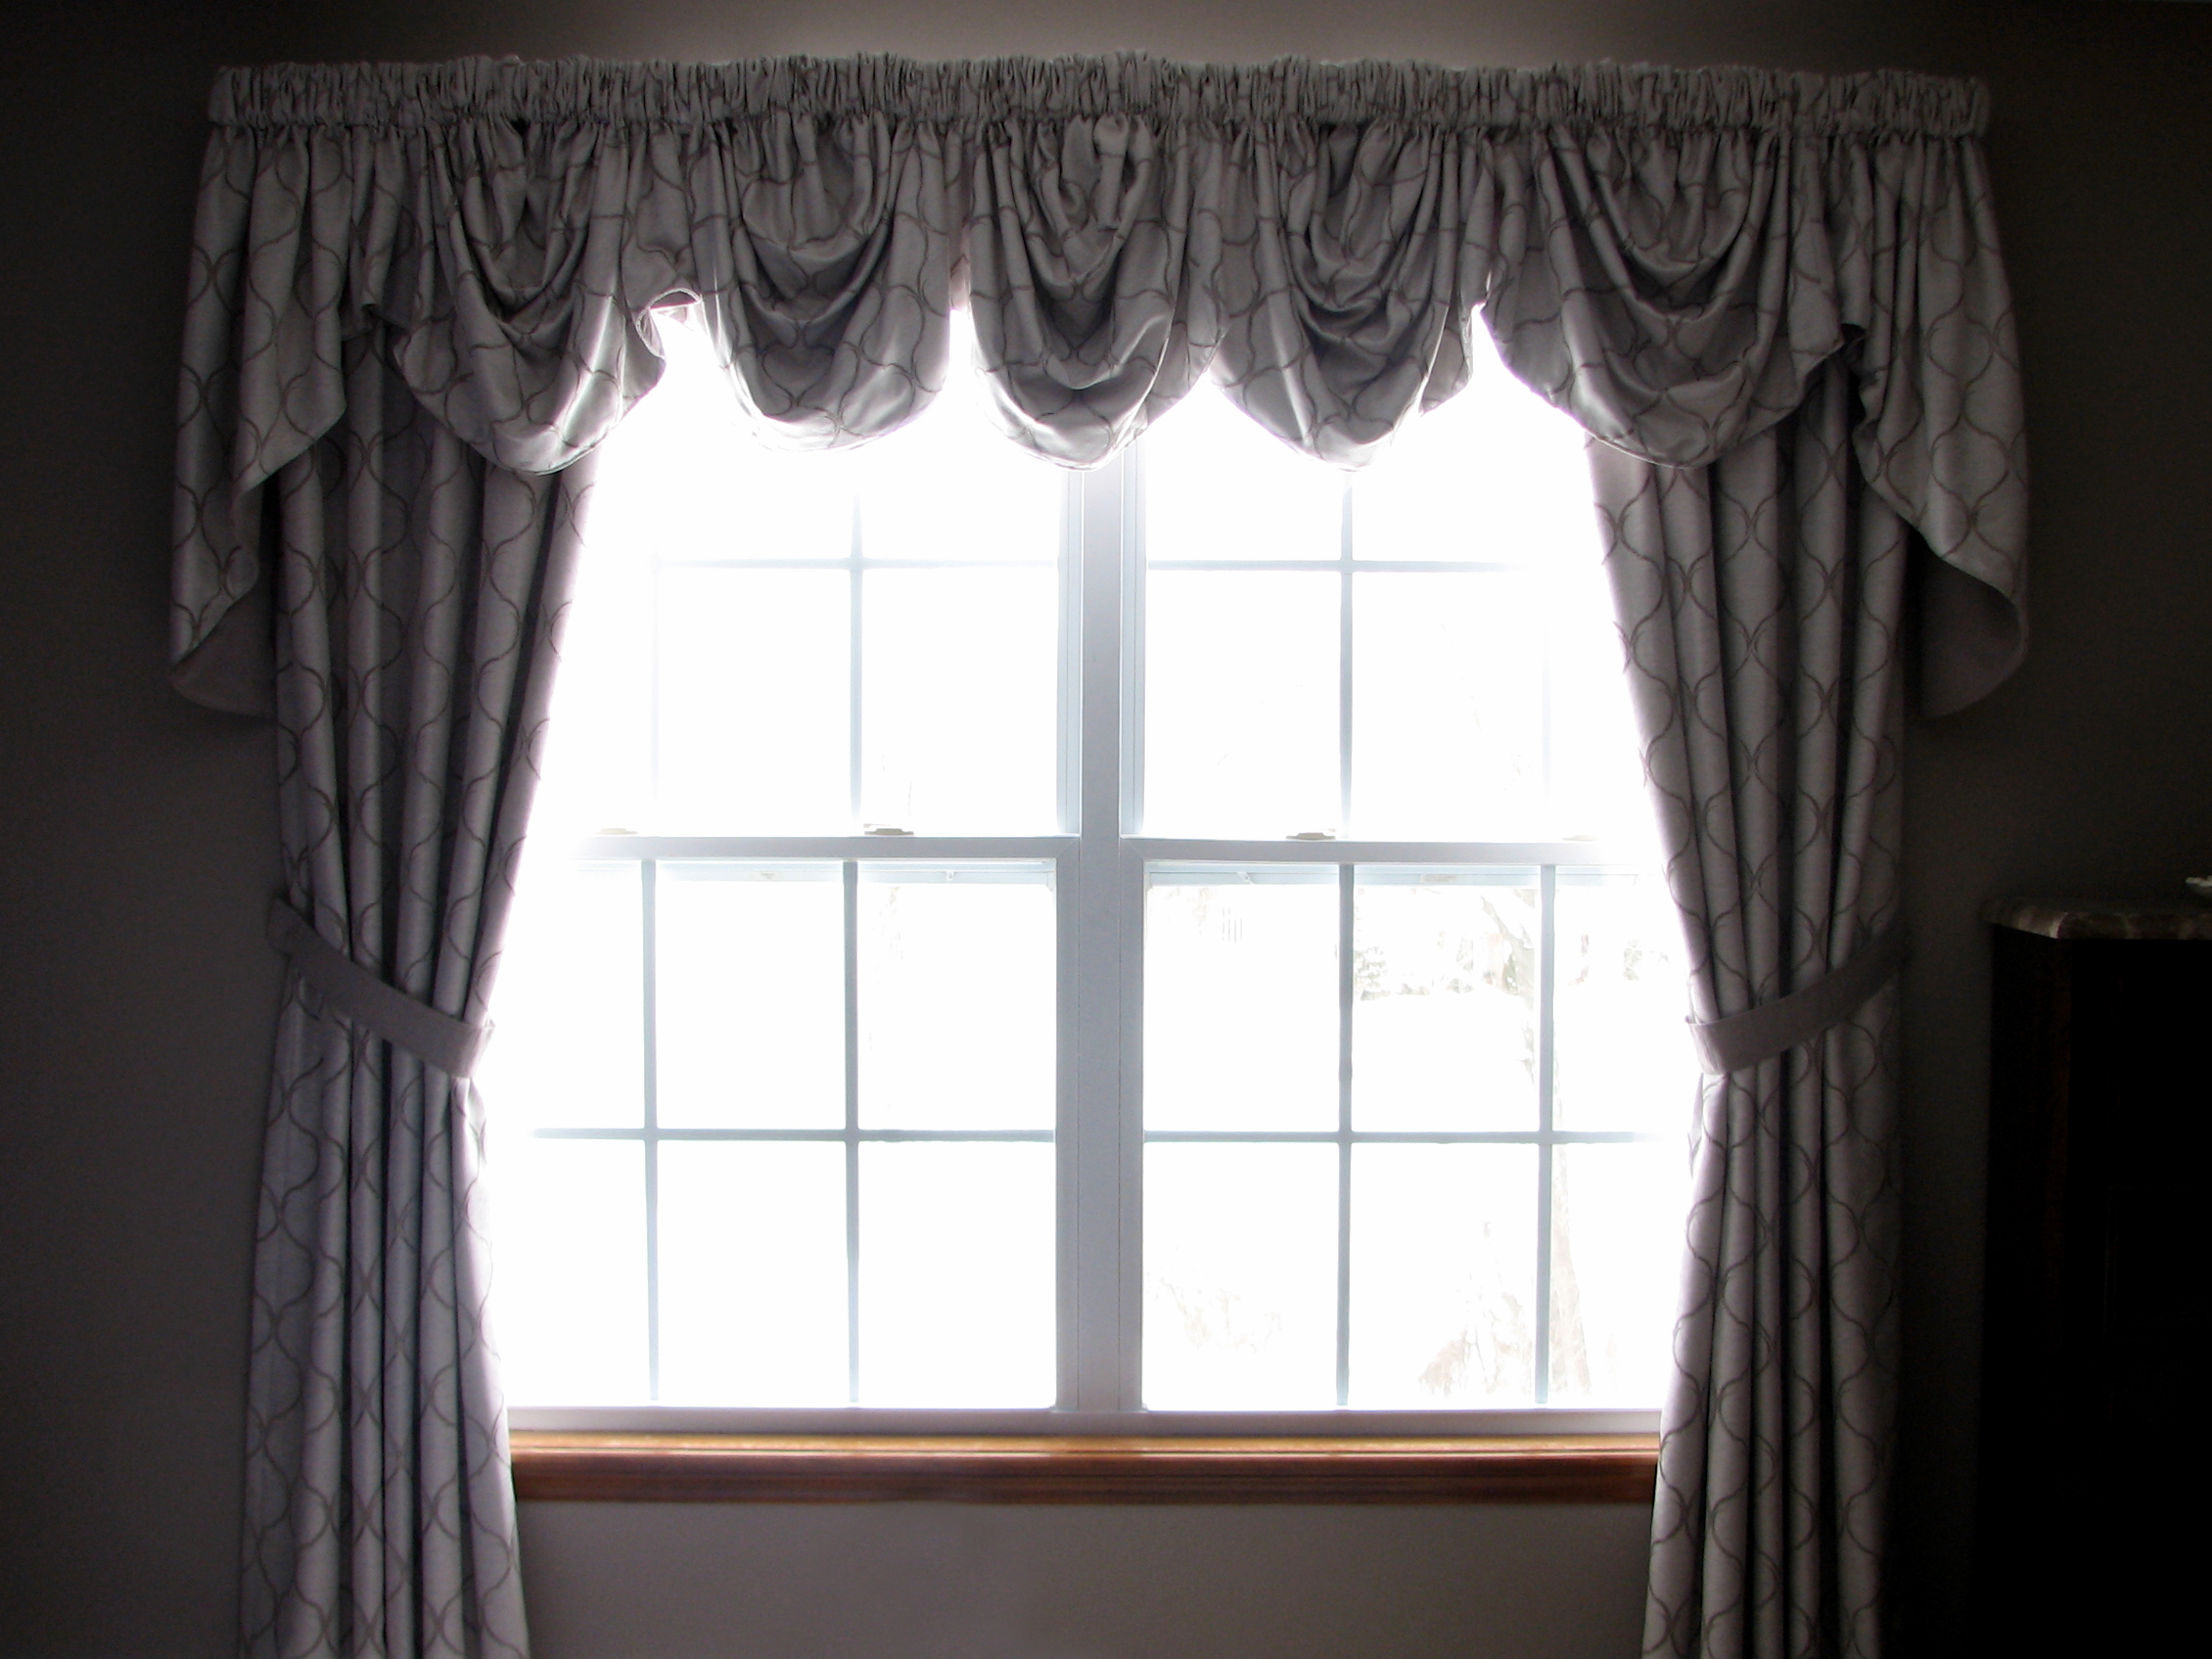 bedding each window treatment to draperies hardware img decorators a curtain variety and complement also of design room custom our tx sheer panels drapes drapery we cornices swags curtains plano include options